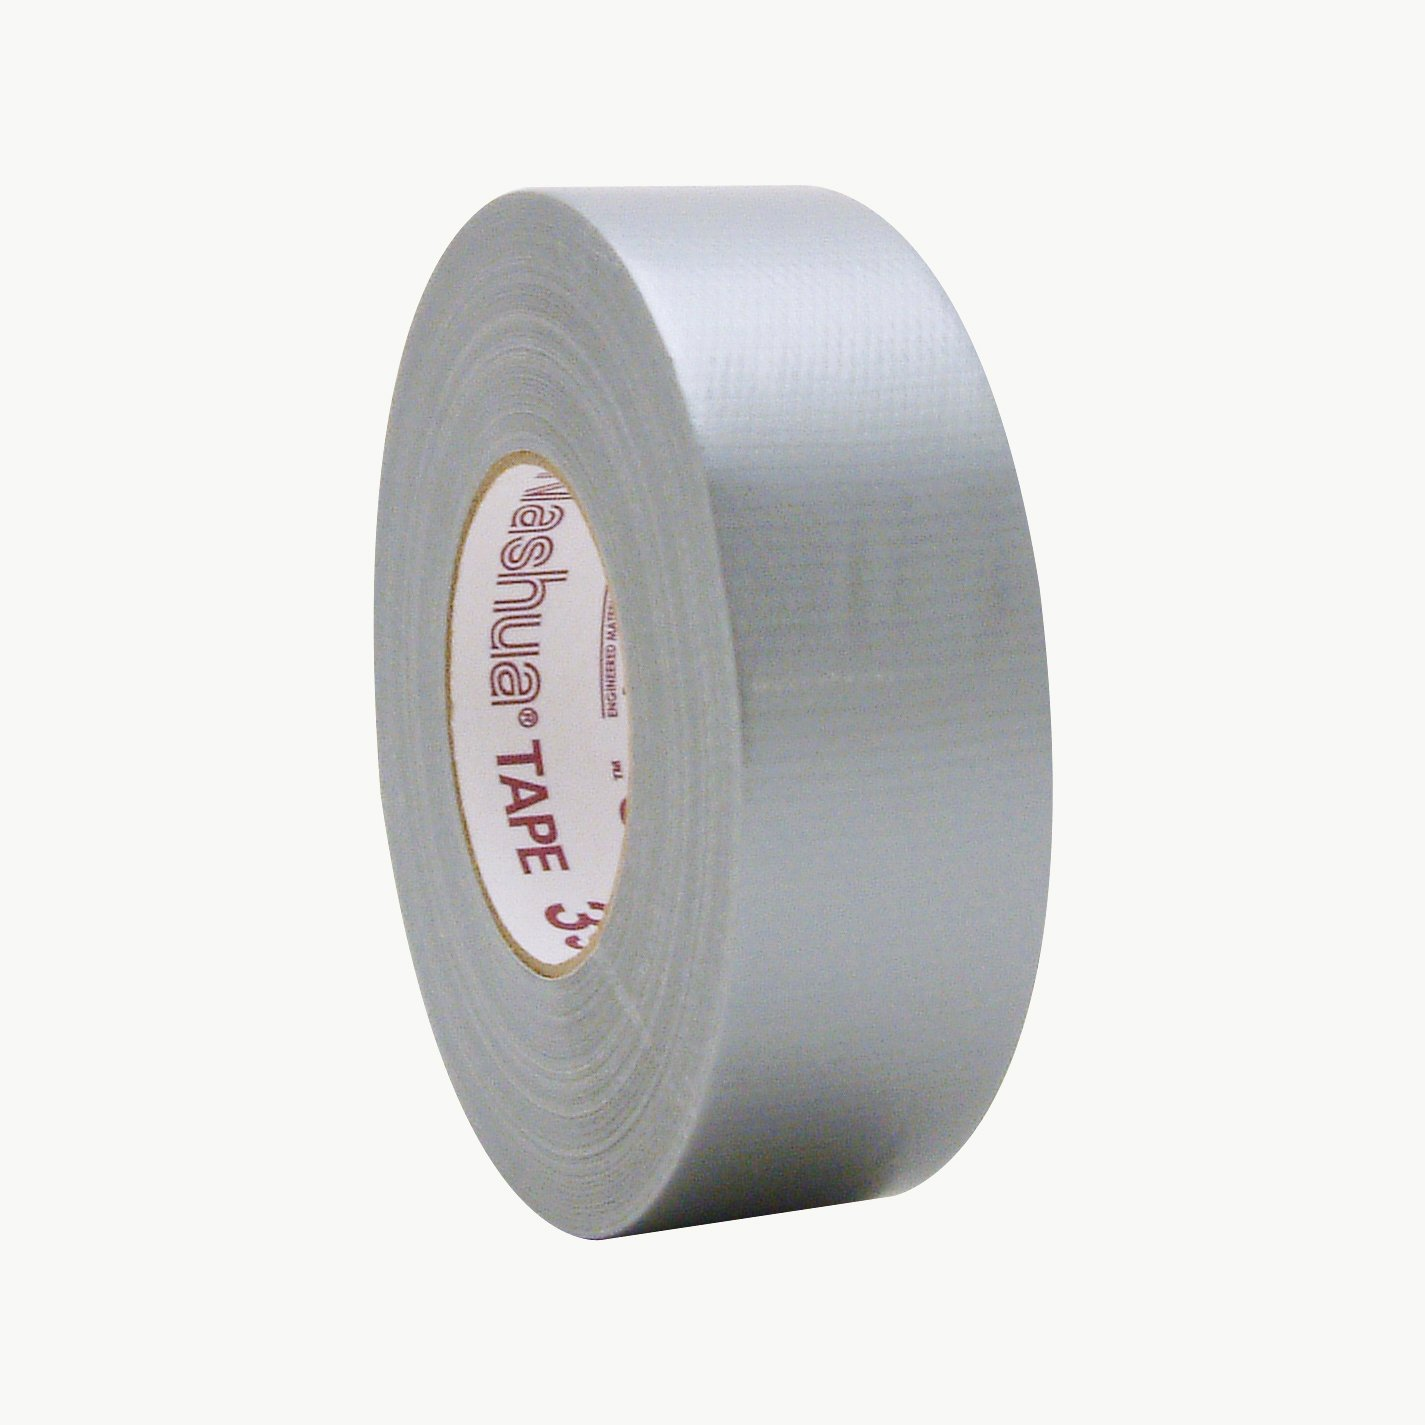 Nashua 398/SI260 398 Professional Grade Duct Tape, 27 lb. per inch Tensile Strength, 60 yd. Length x 2'' Width, Silver